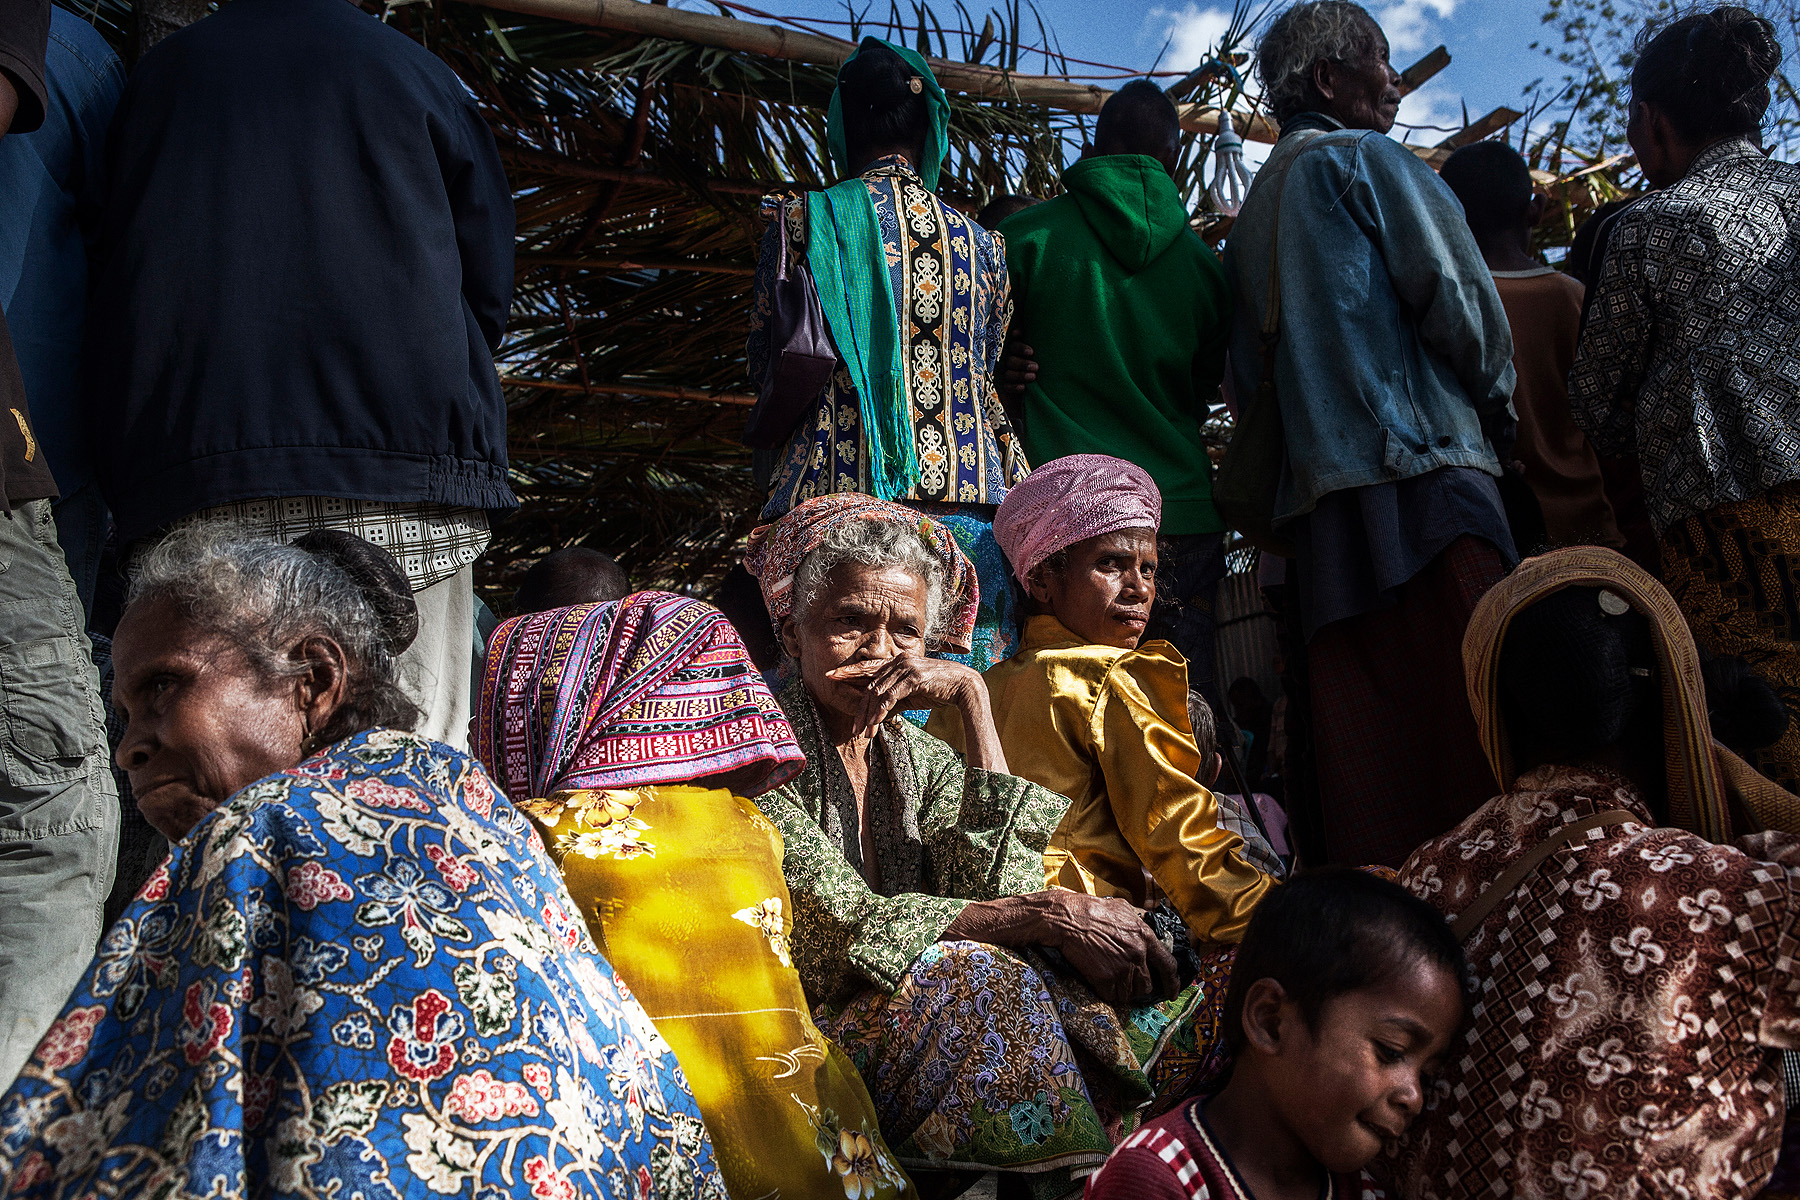 Villagers in Bobonaro wait for a meeting with East Timor's president, Taur Matan Ruak